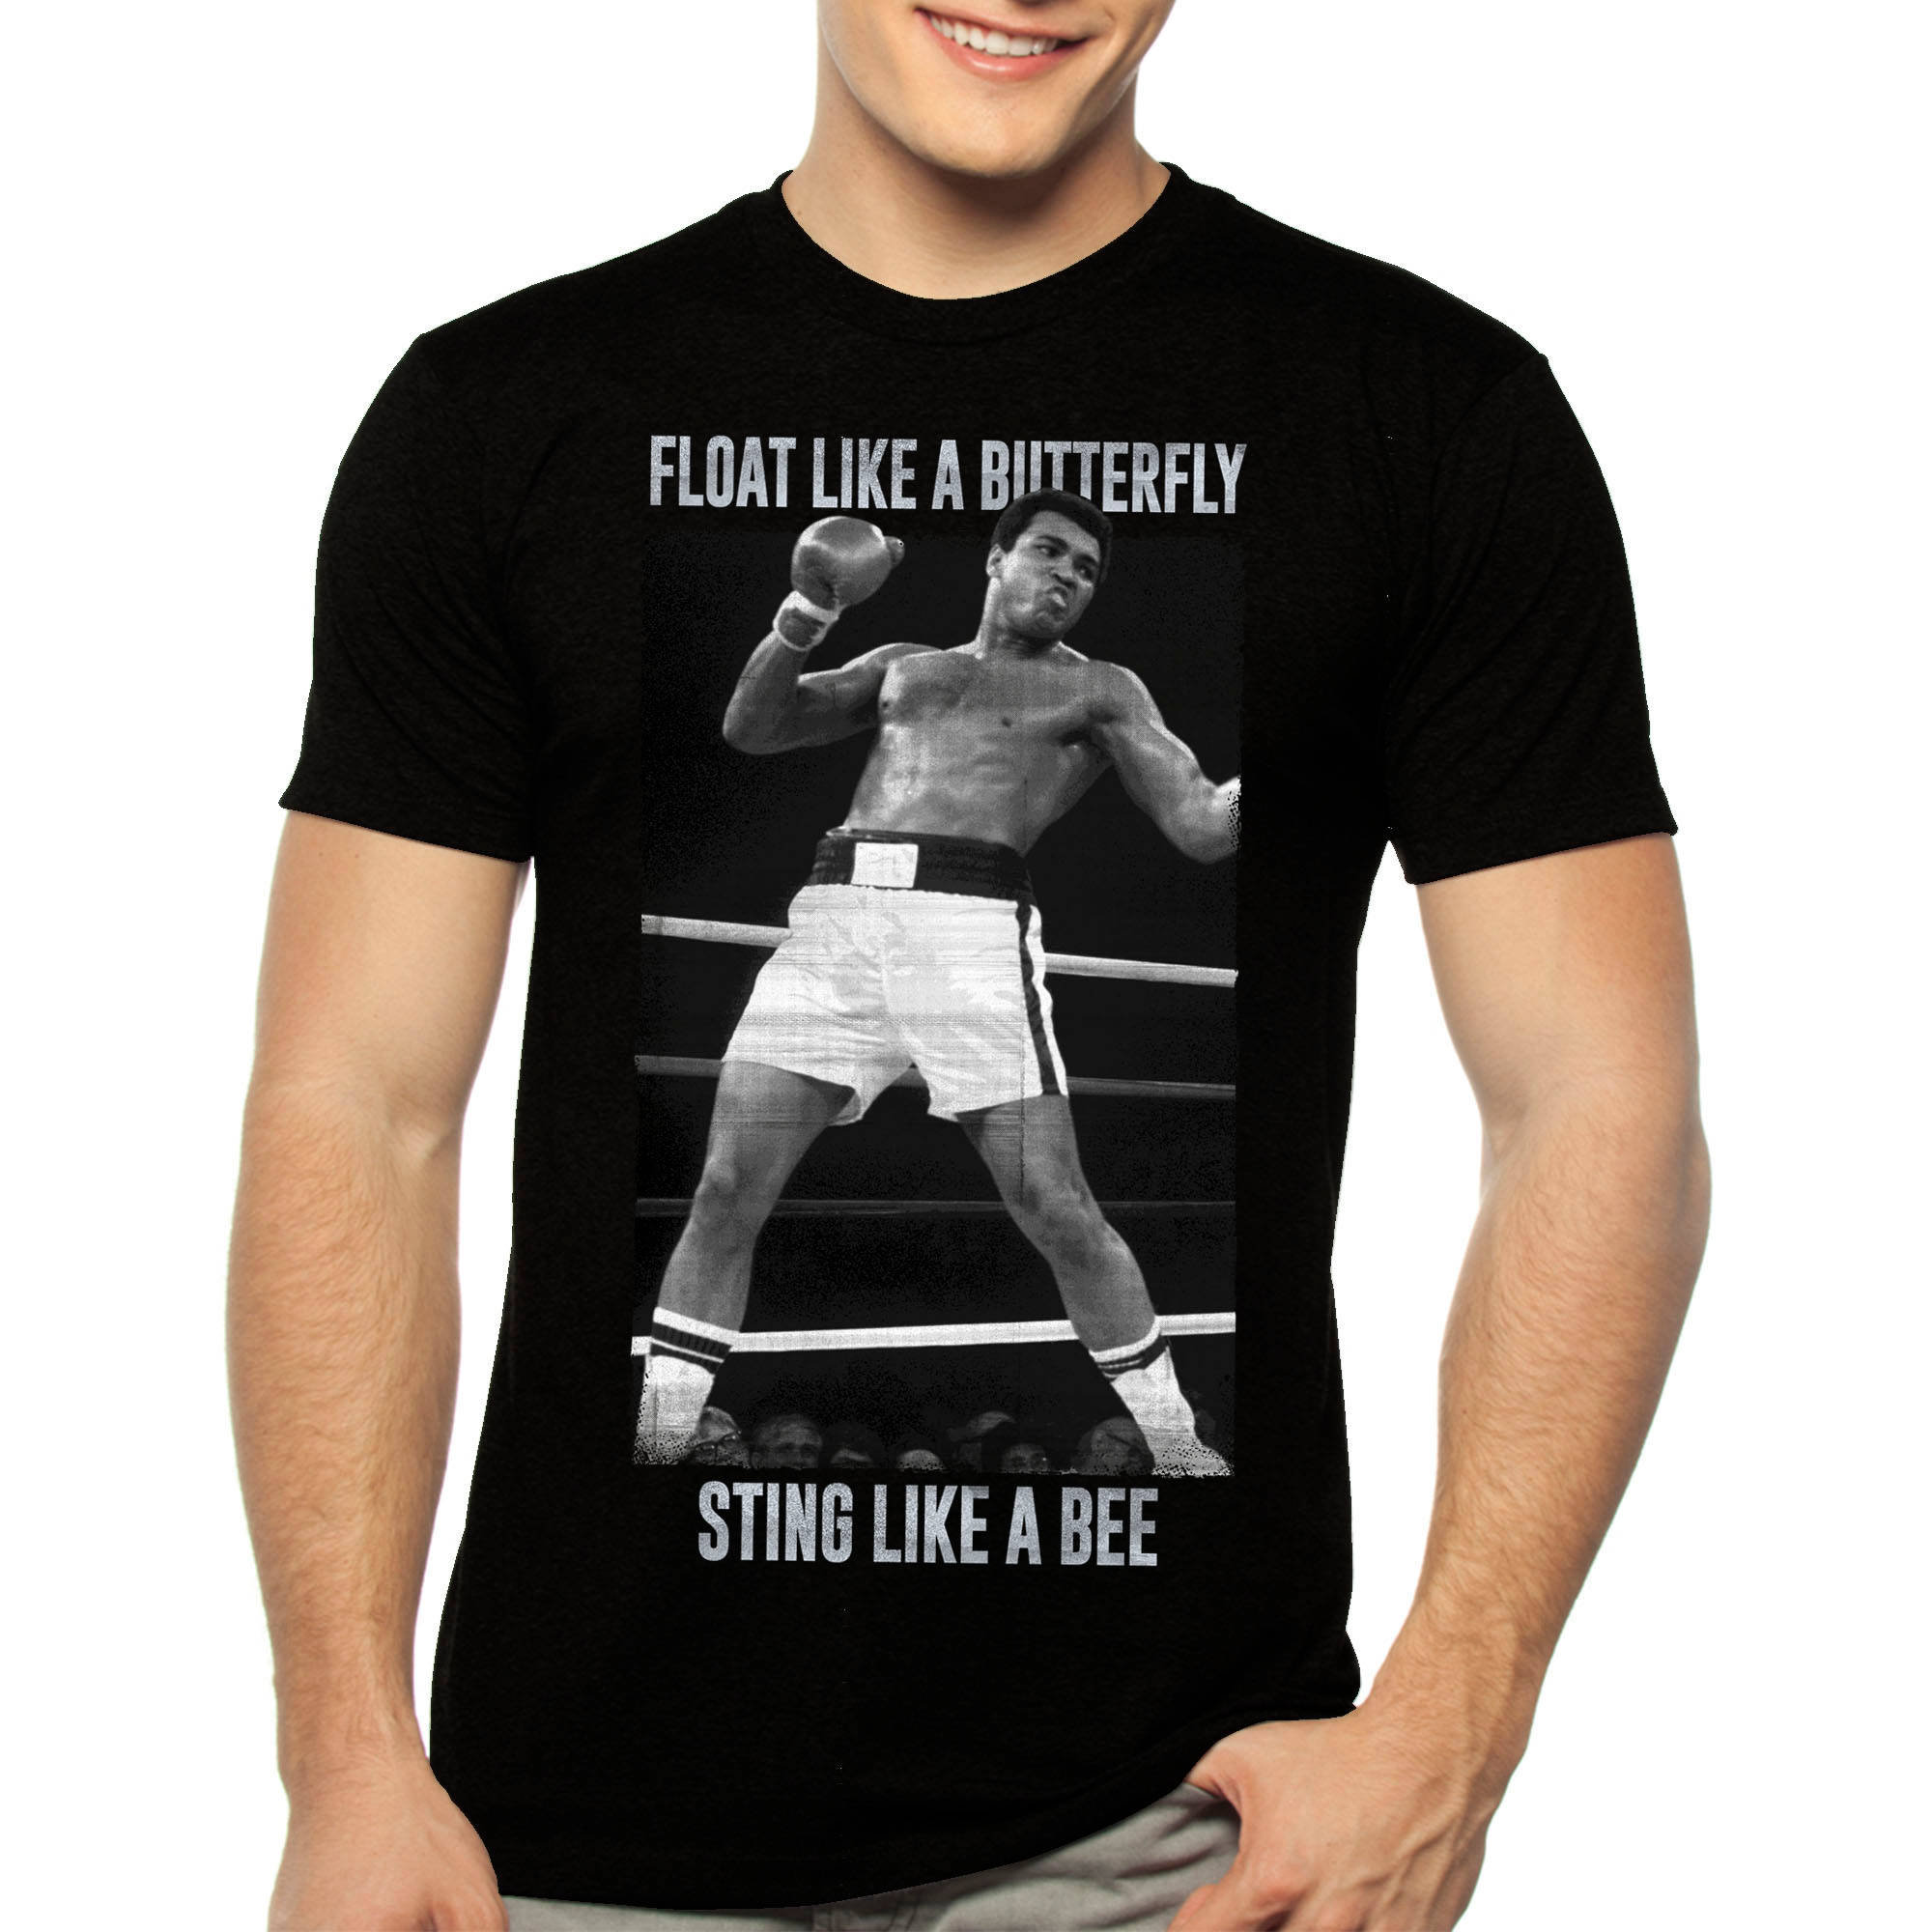 Muhammad Ali Men's Float Like a Butterfly Graphic Tee